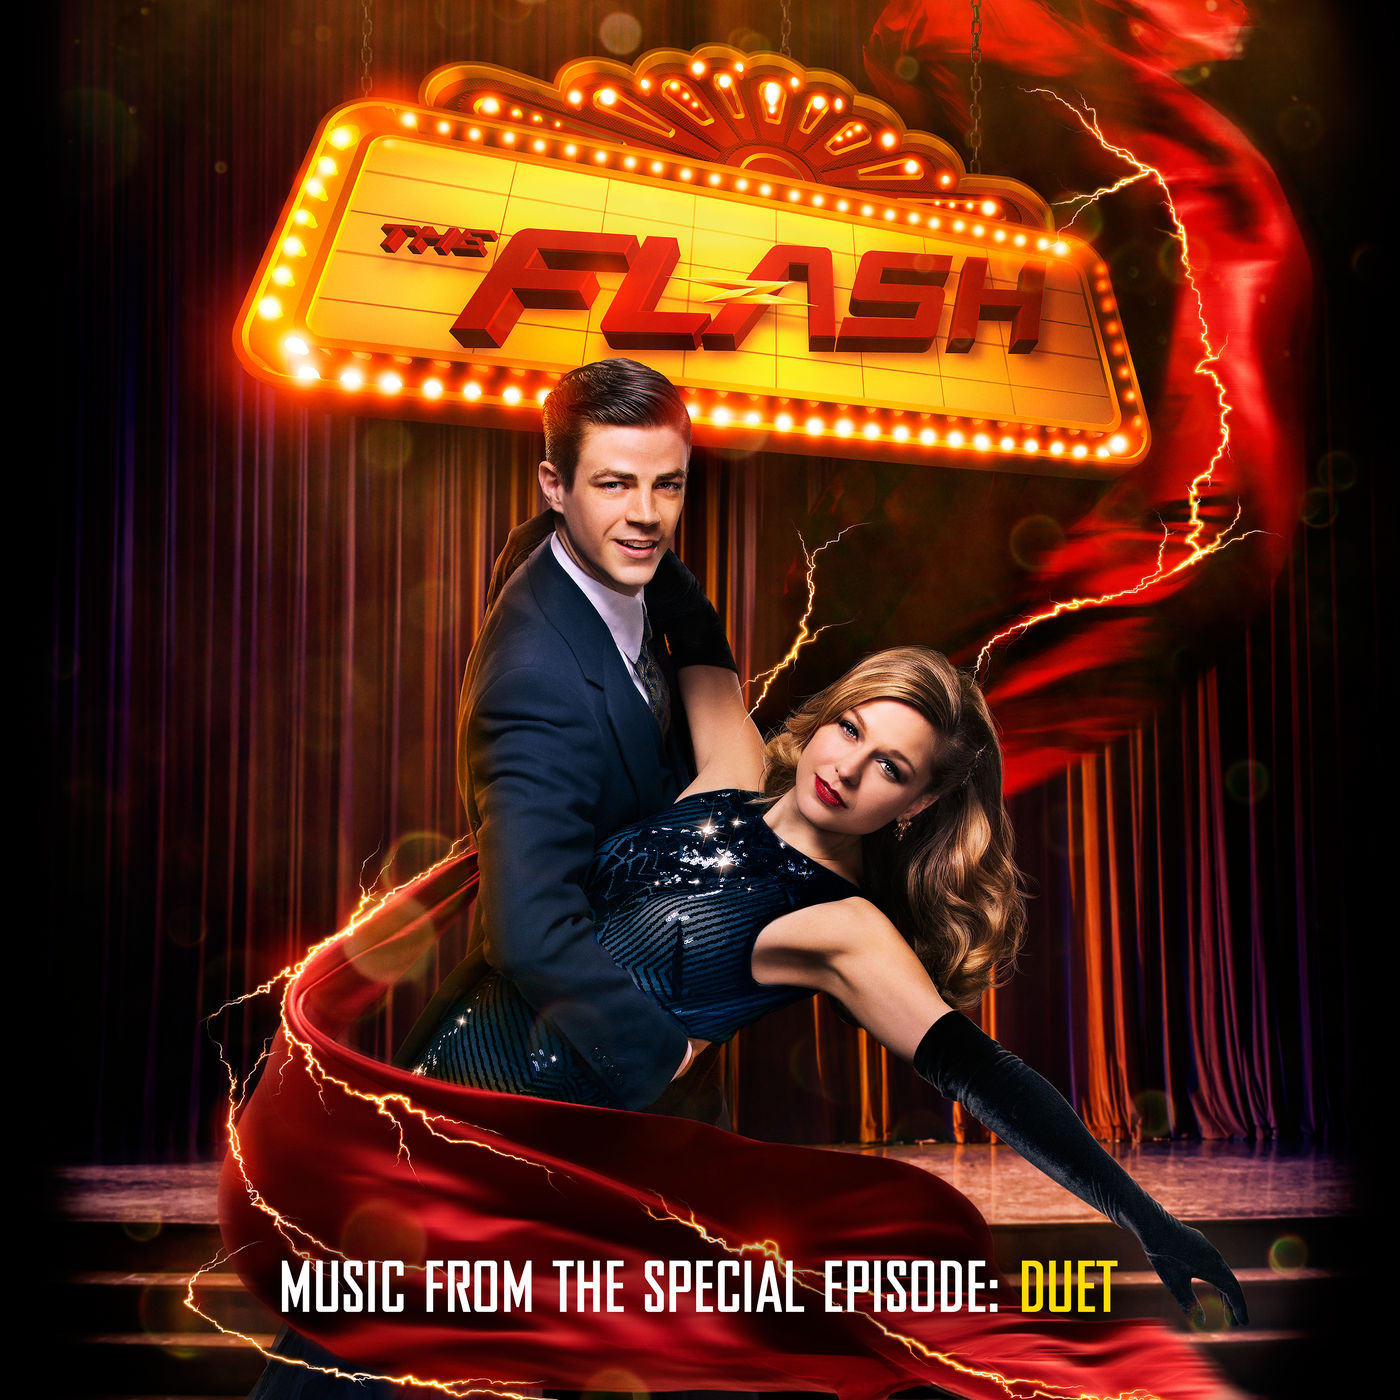 Various Artists - The Flash - Music From the Special Episode: Duet